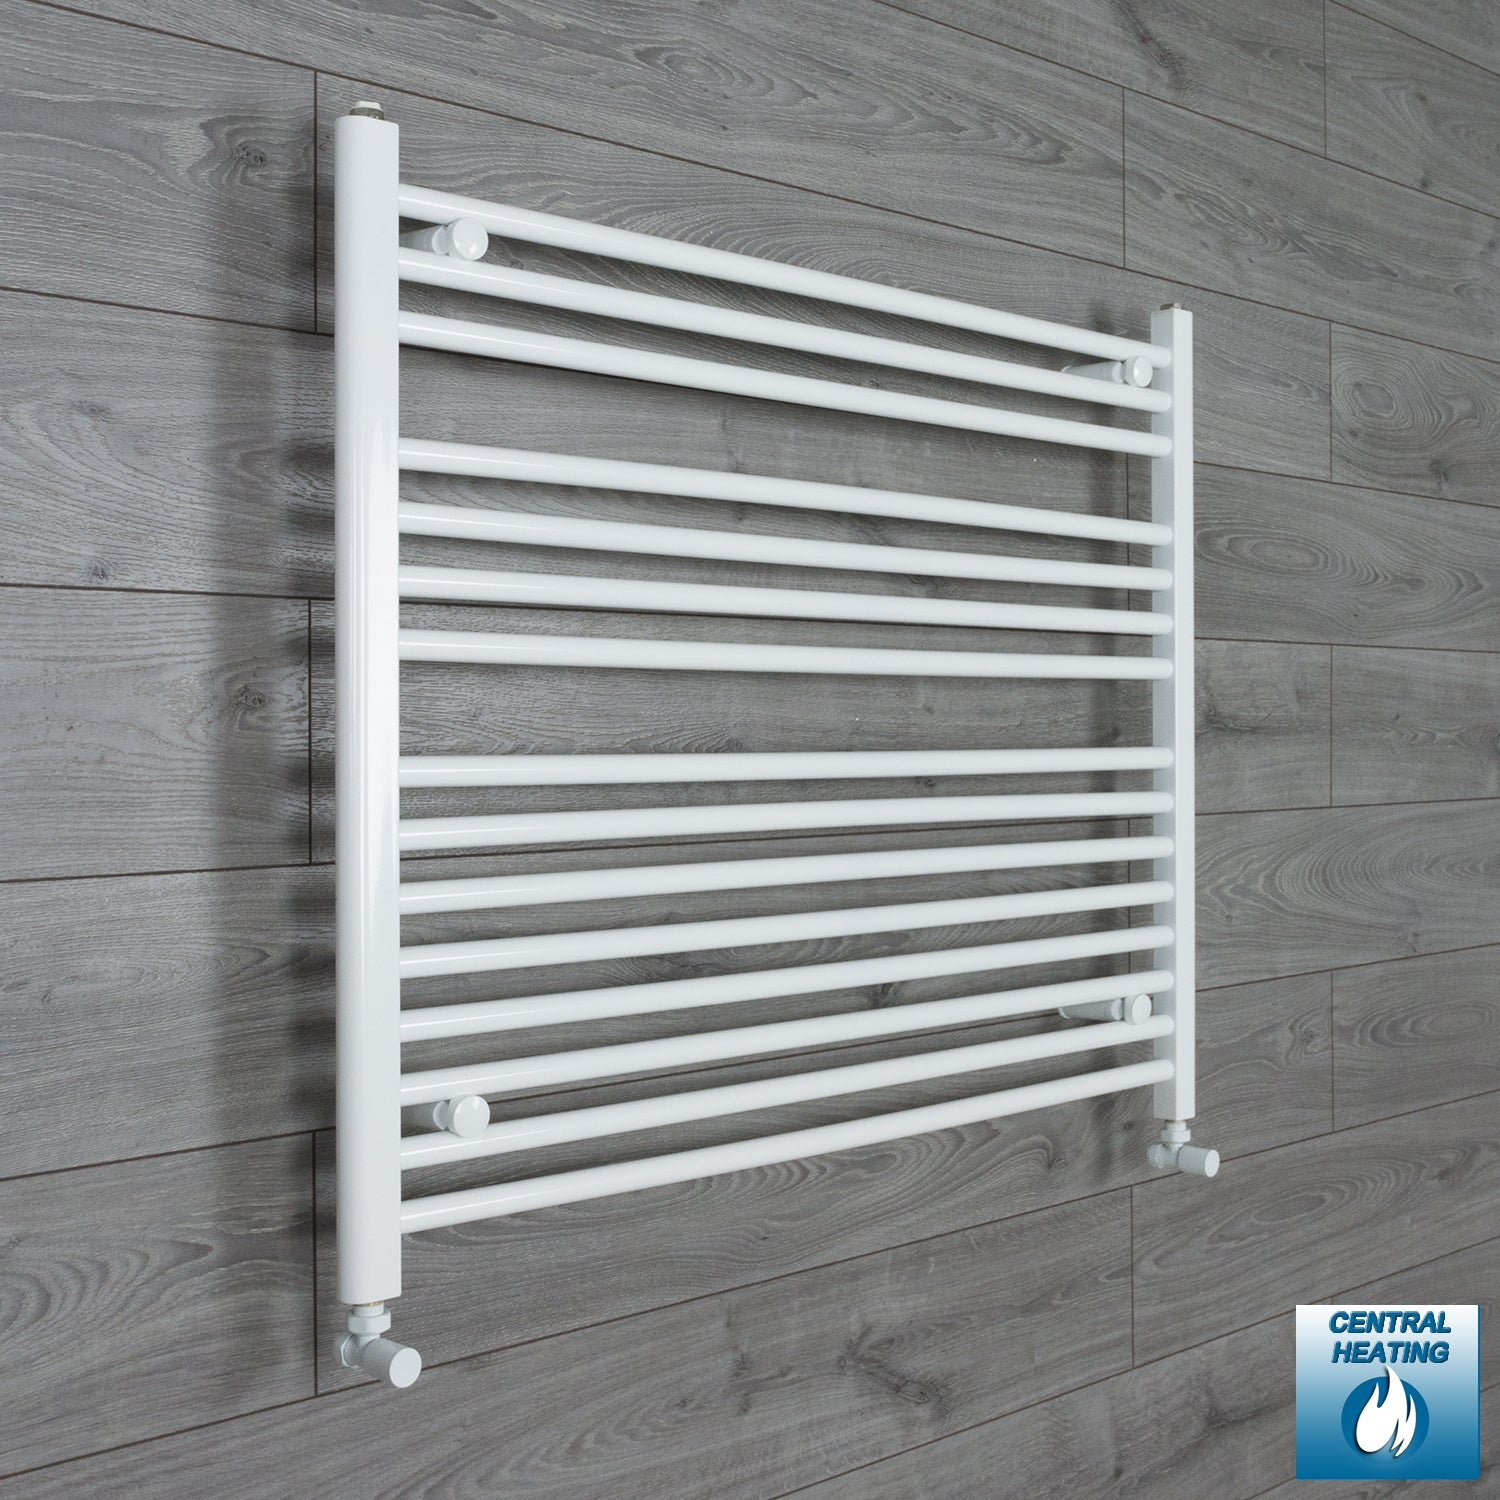 950mm Wide 800mm High White Towel Rail Radiator With Angled Valve